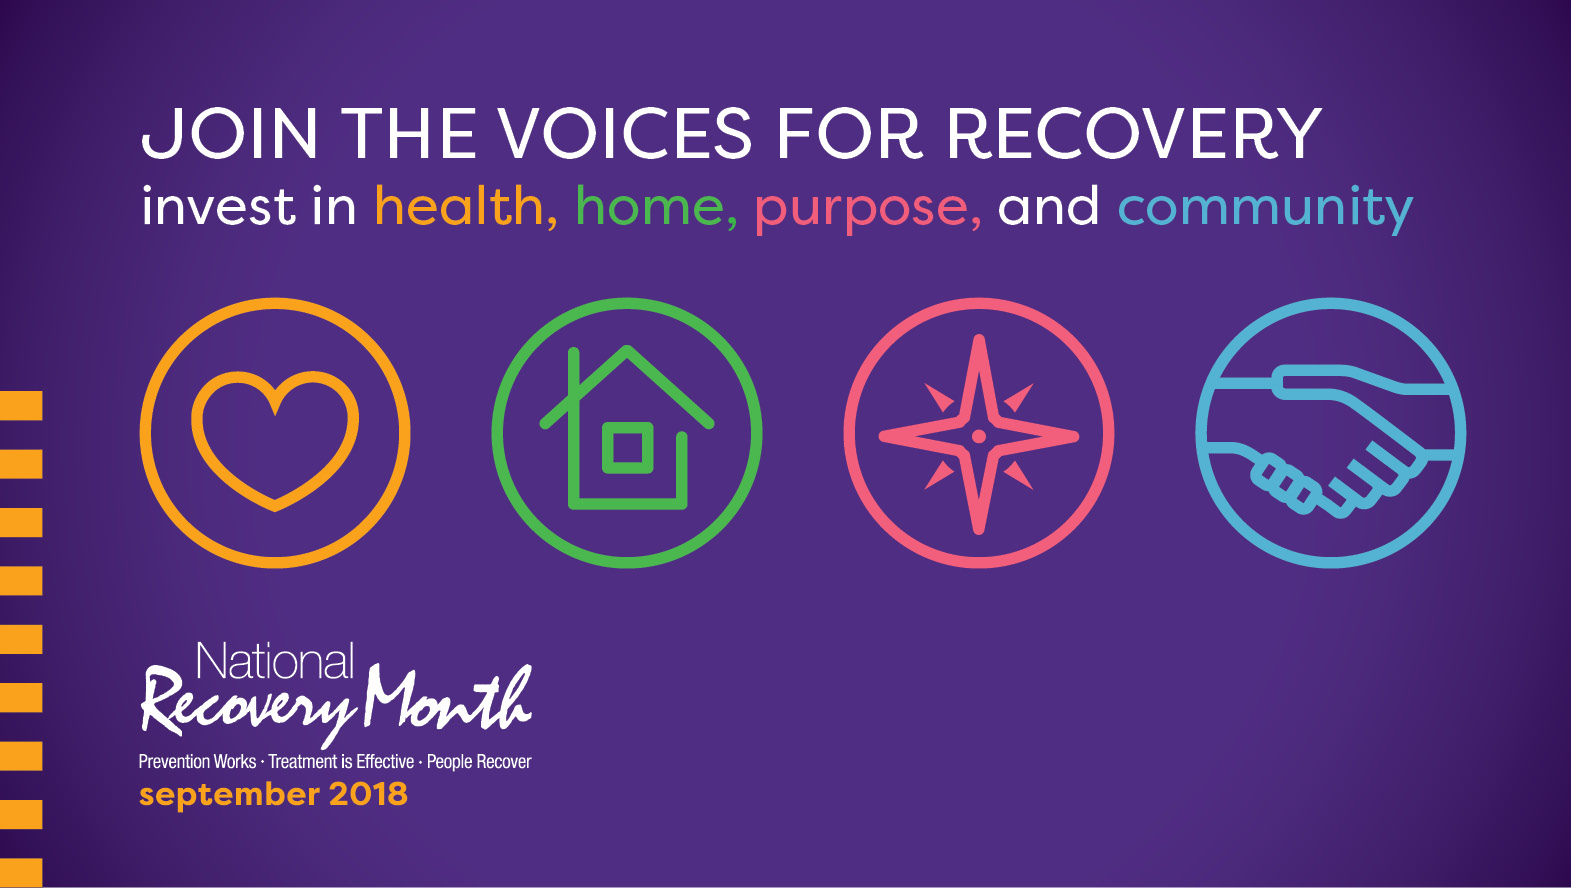 Banner. Join the voices for recovery. Invest in health, income, purpose, and community. National Recovery Month. Prevention Works. Treatment is effective. People recover. September 2018.